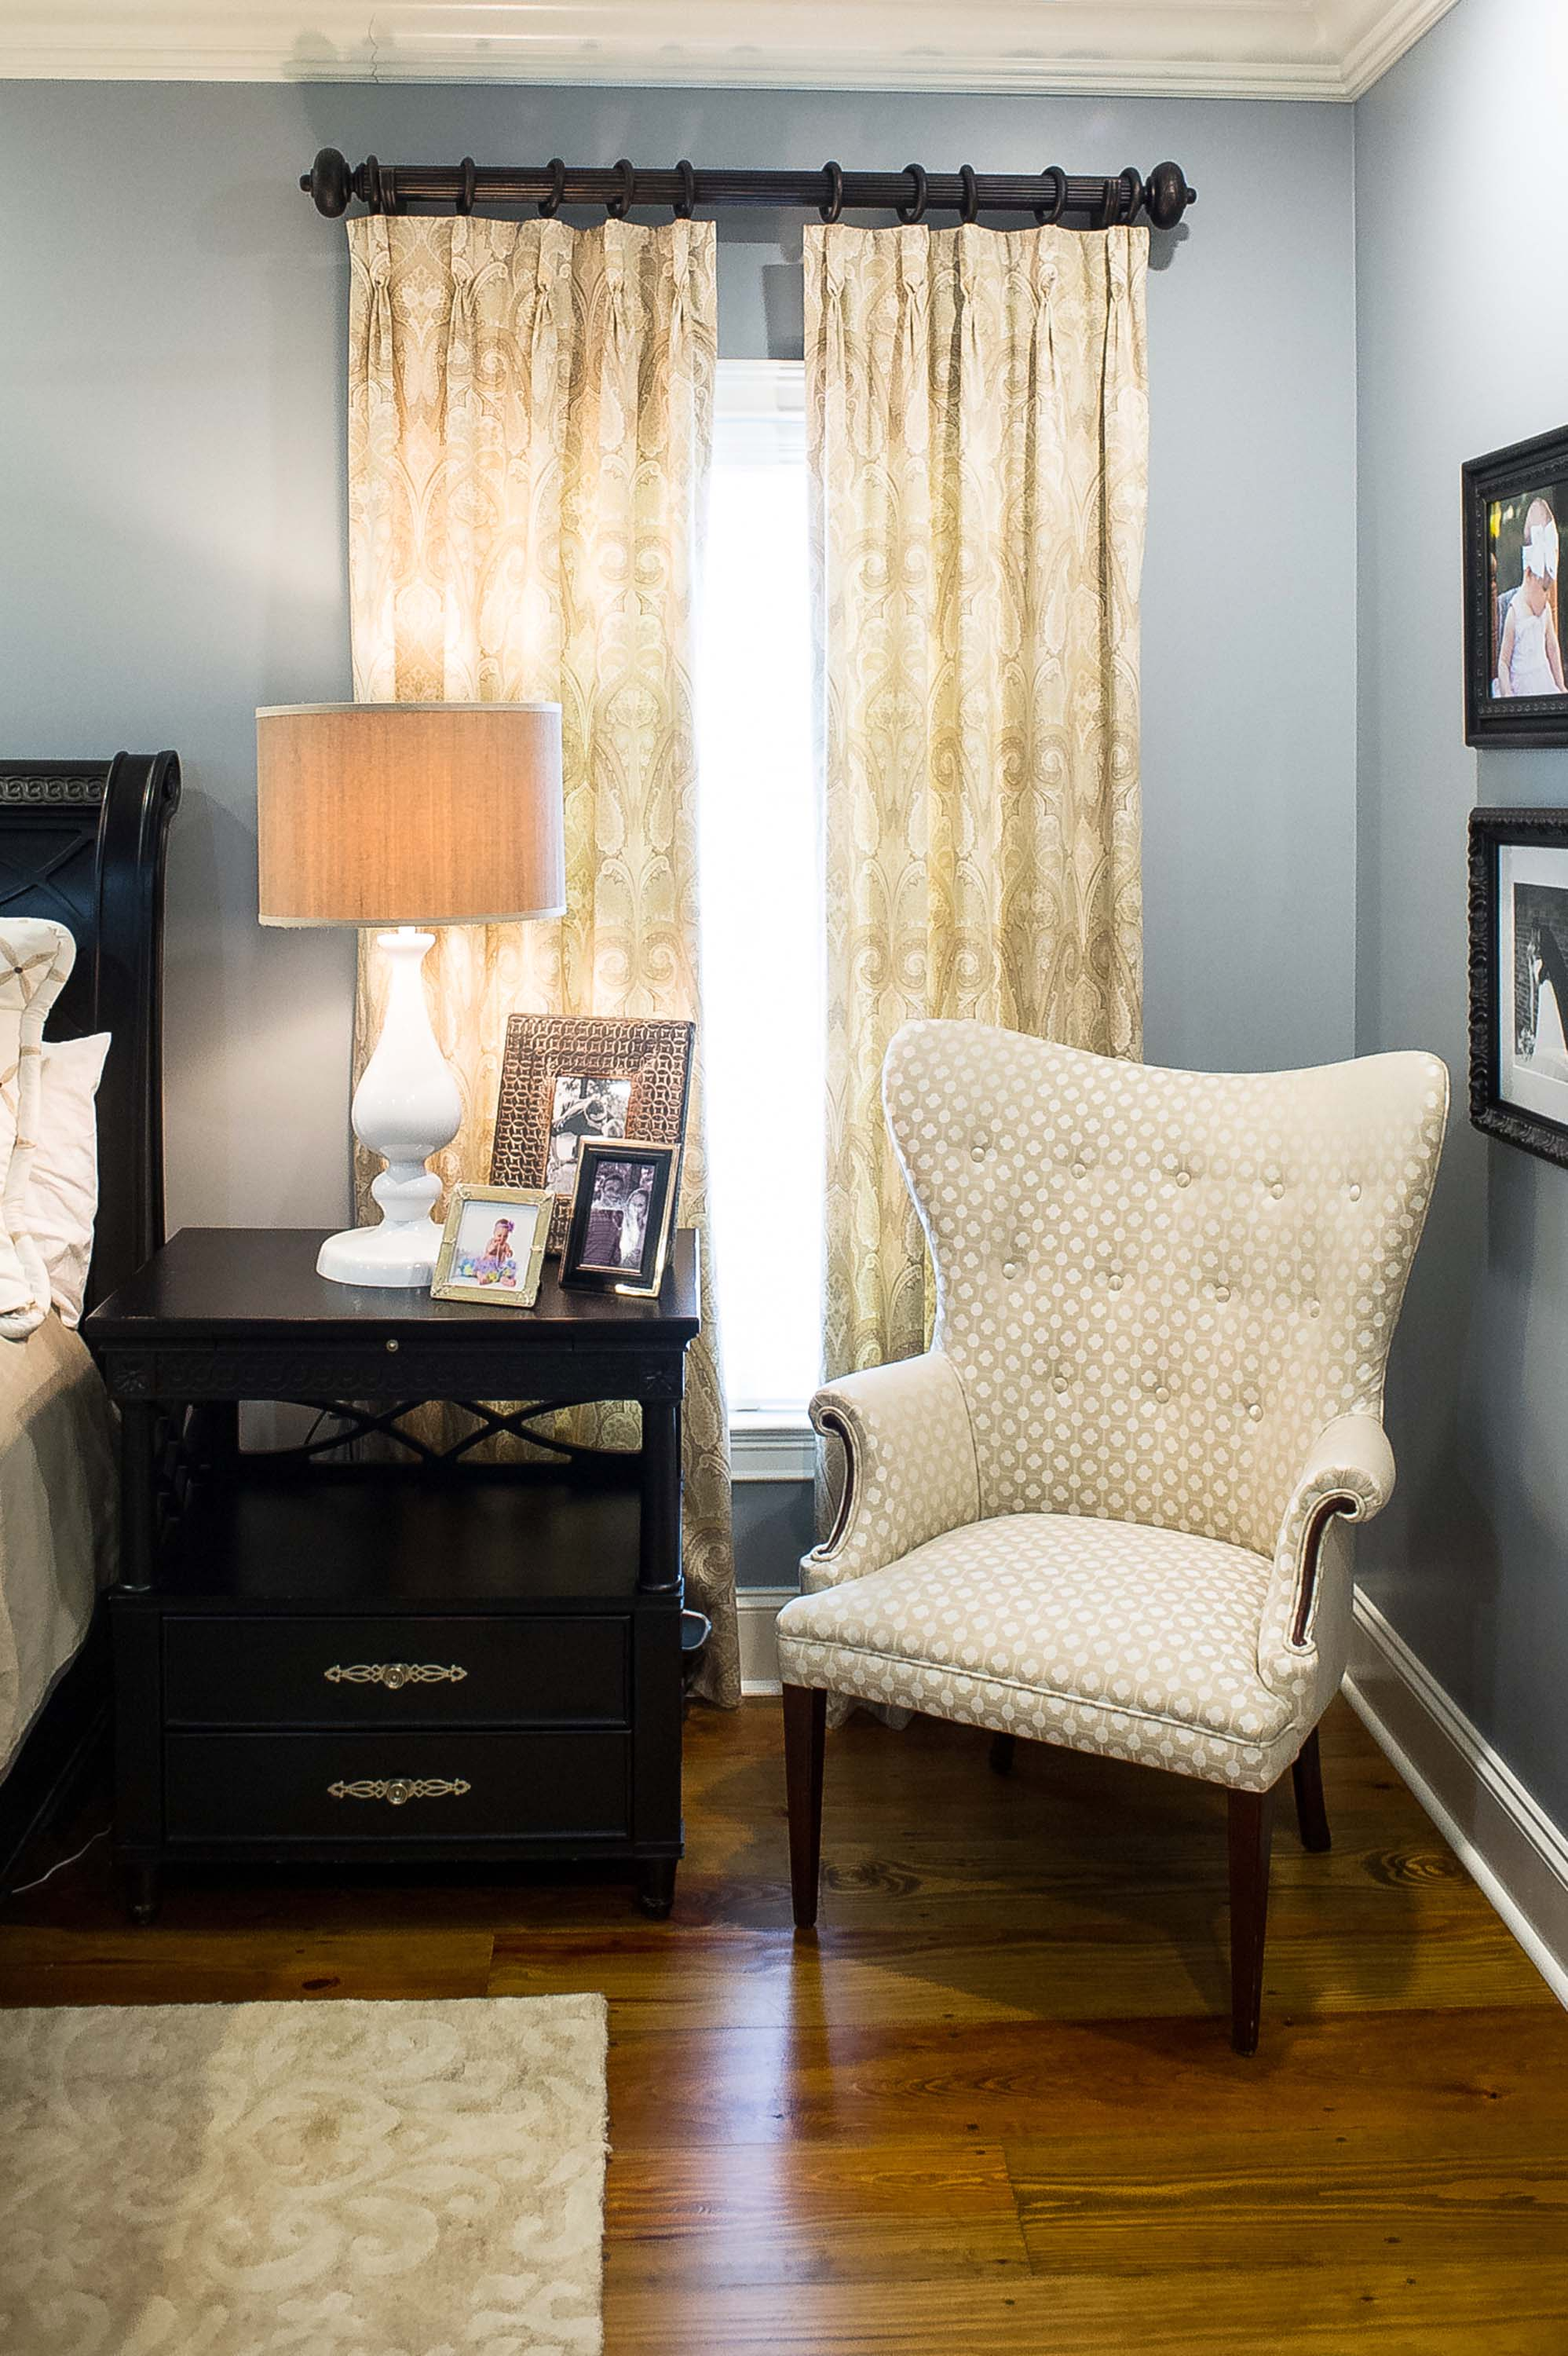 Custom Window Treatments, Upholstered Chair, Lamp and Area Rug